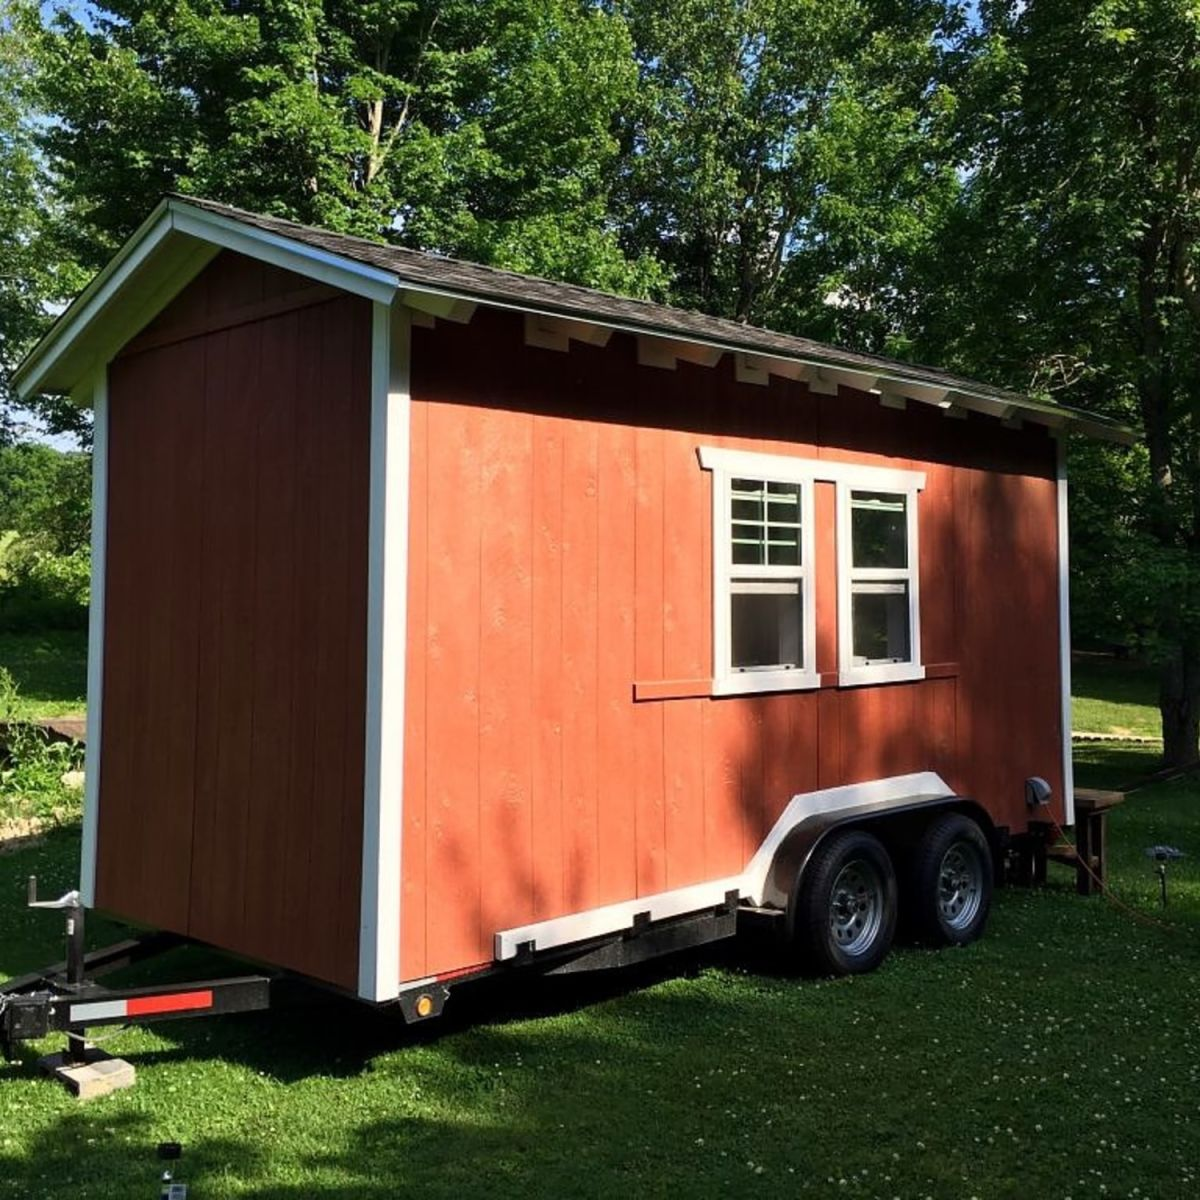 Rustic Tiny House on Wheels - Tiny House for Sale in Cookeville, Tennessee  - Tiny House Listings